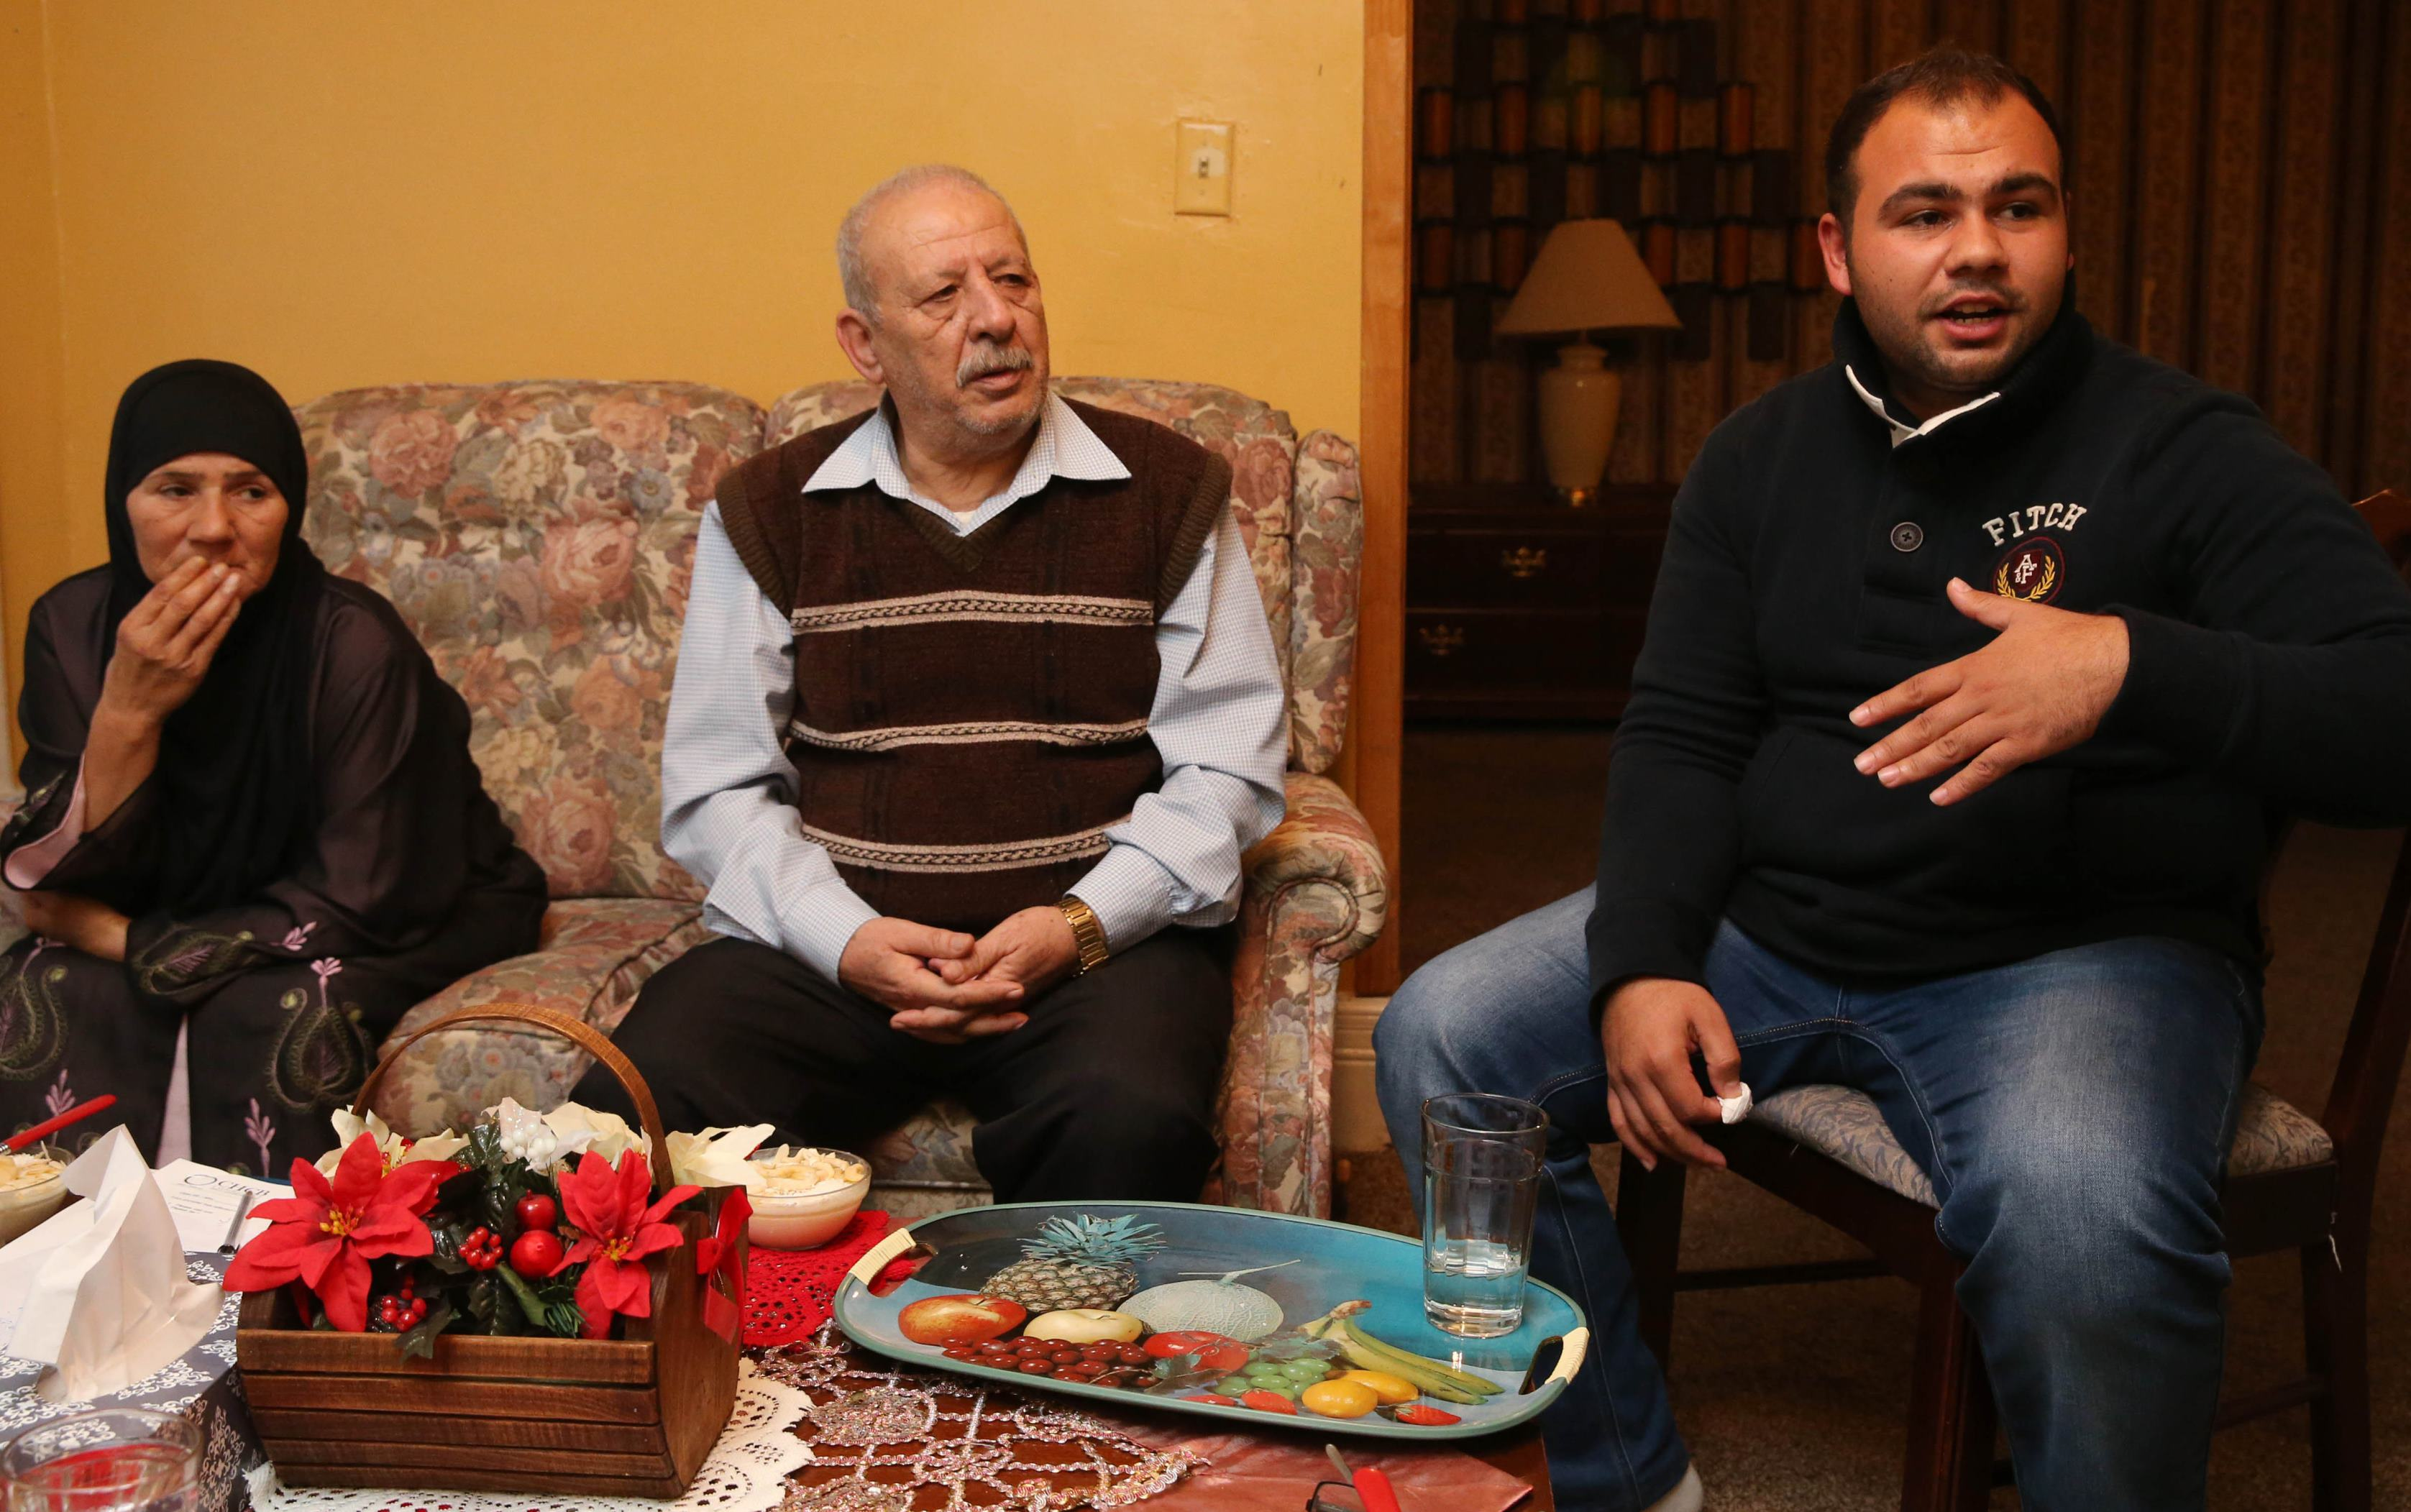 The Ay Toghlo family, refugees from Syria, are now residents on Buffalo's West side. Photo taken in their home, Wednesday, Nov. 23, 2016. From left are Eidah Al Suleiman, 54, her husband Mohammed Ay Toghlo, 67, and their son Najati Ay Toghlo, 24. They talk about how they came to the United States and how happy they are to be here. Husband and wife arrived on August 24 and their son arrived on Spetember 21.(Sharon Cantillon/Buffalo News)